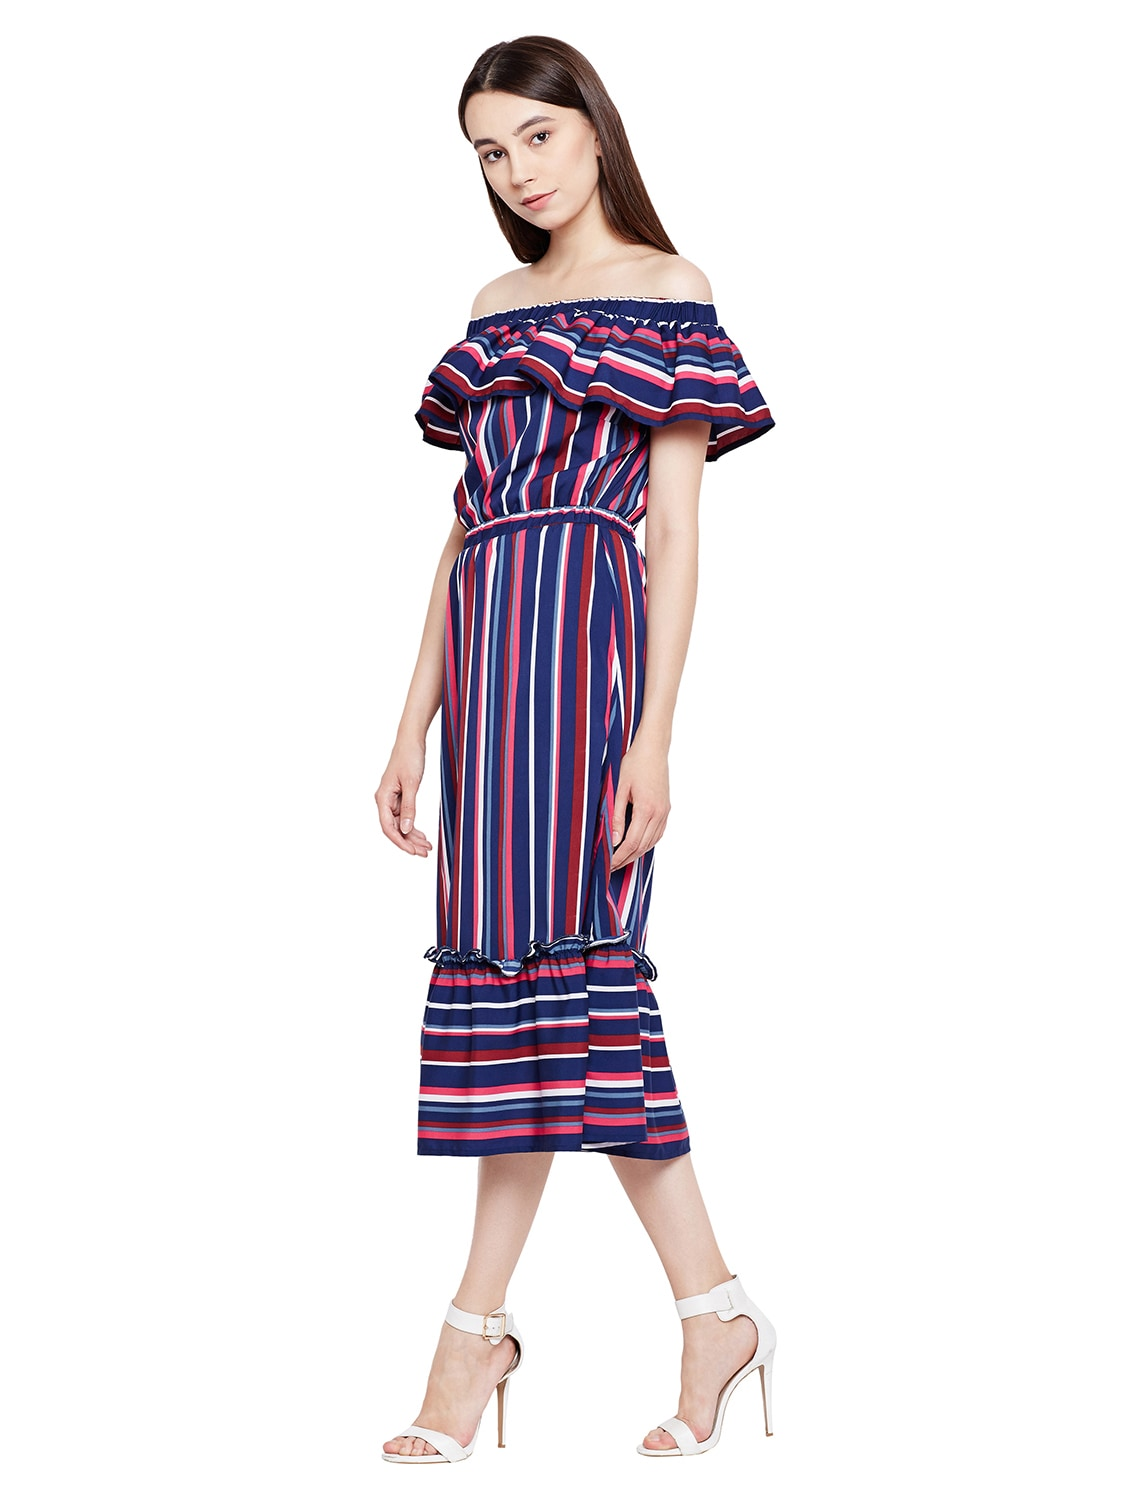 25dfc3d782dc Buy Ruffled Detail Striped Off Shoulder Dress for Women from Oxolloxo for  ₹1458 at 27% off